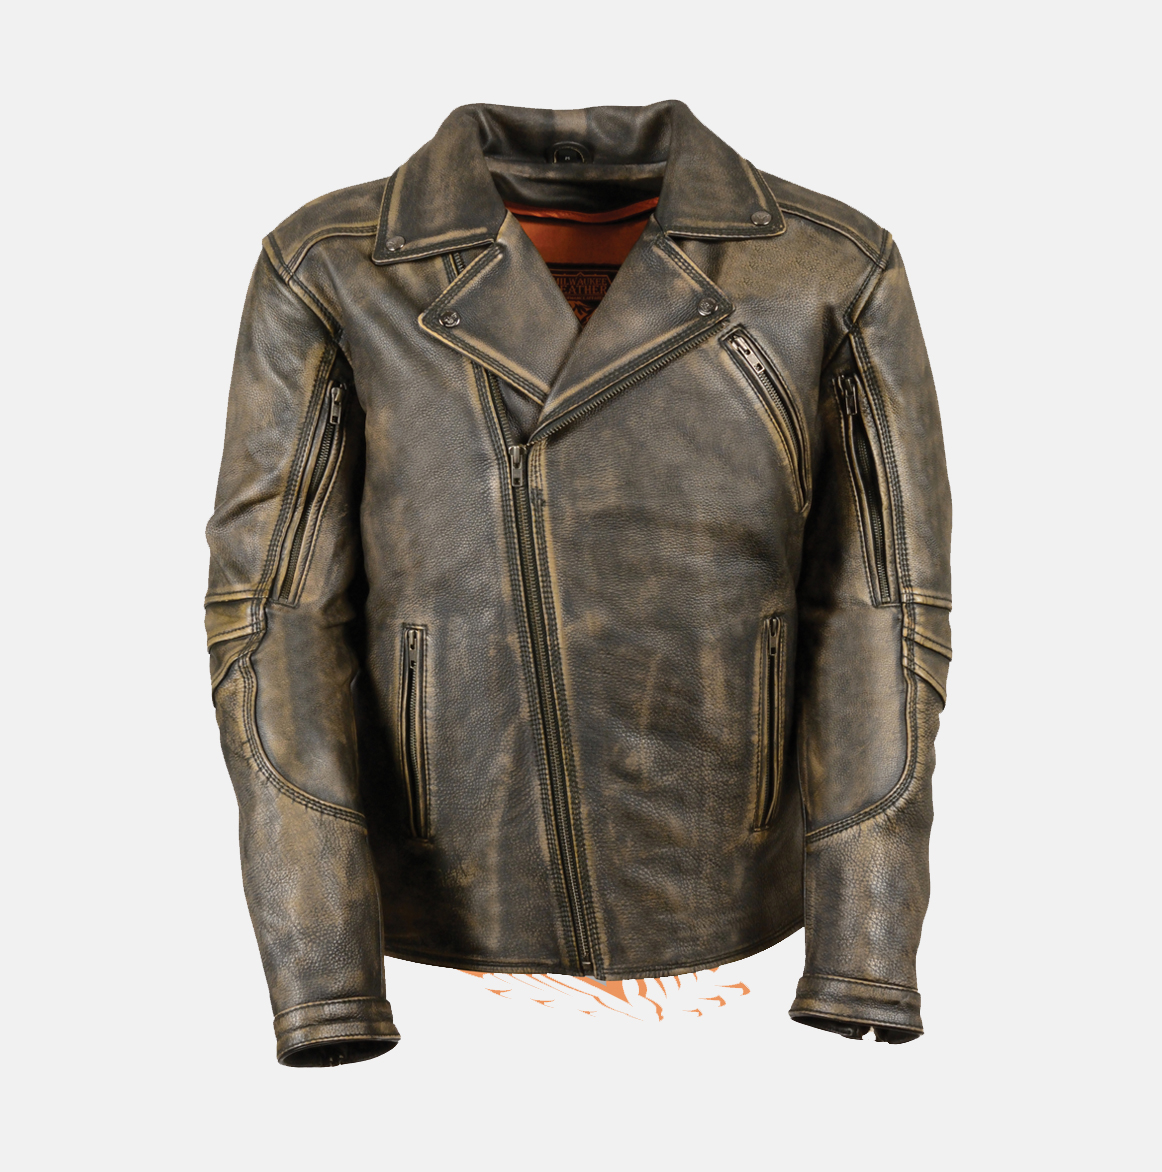 a68d19a2b MEN'S BROWN DISTRESSED LEATHER POLICE JACKET